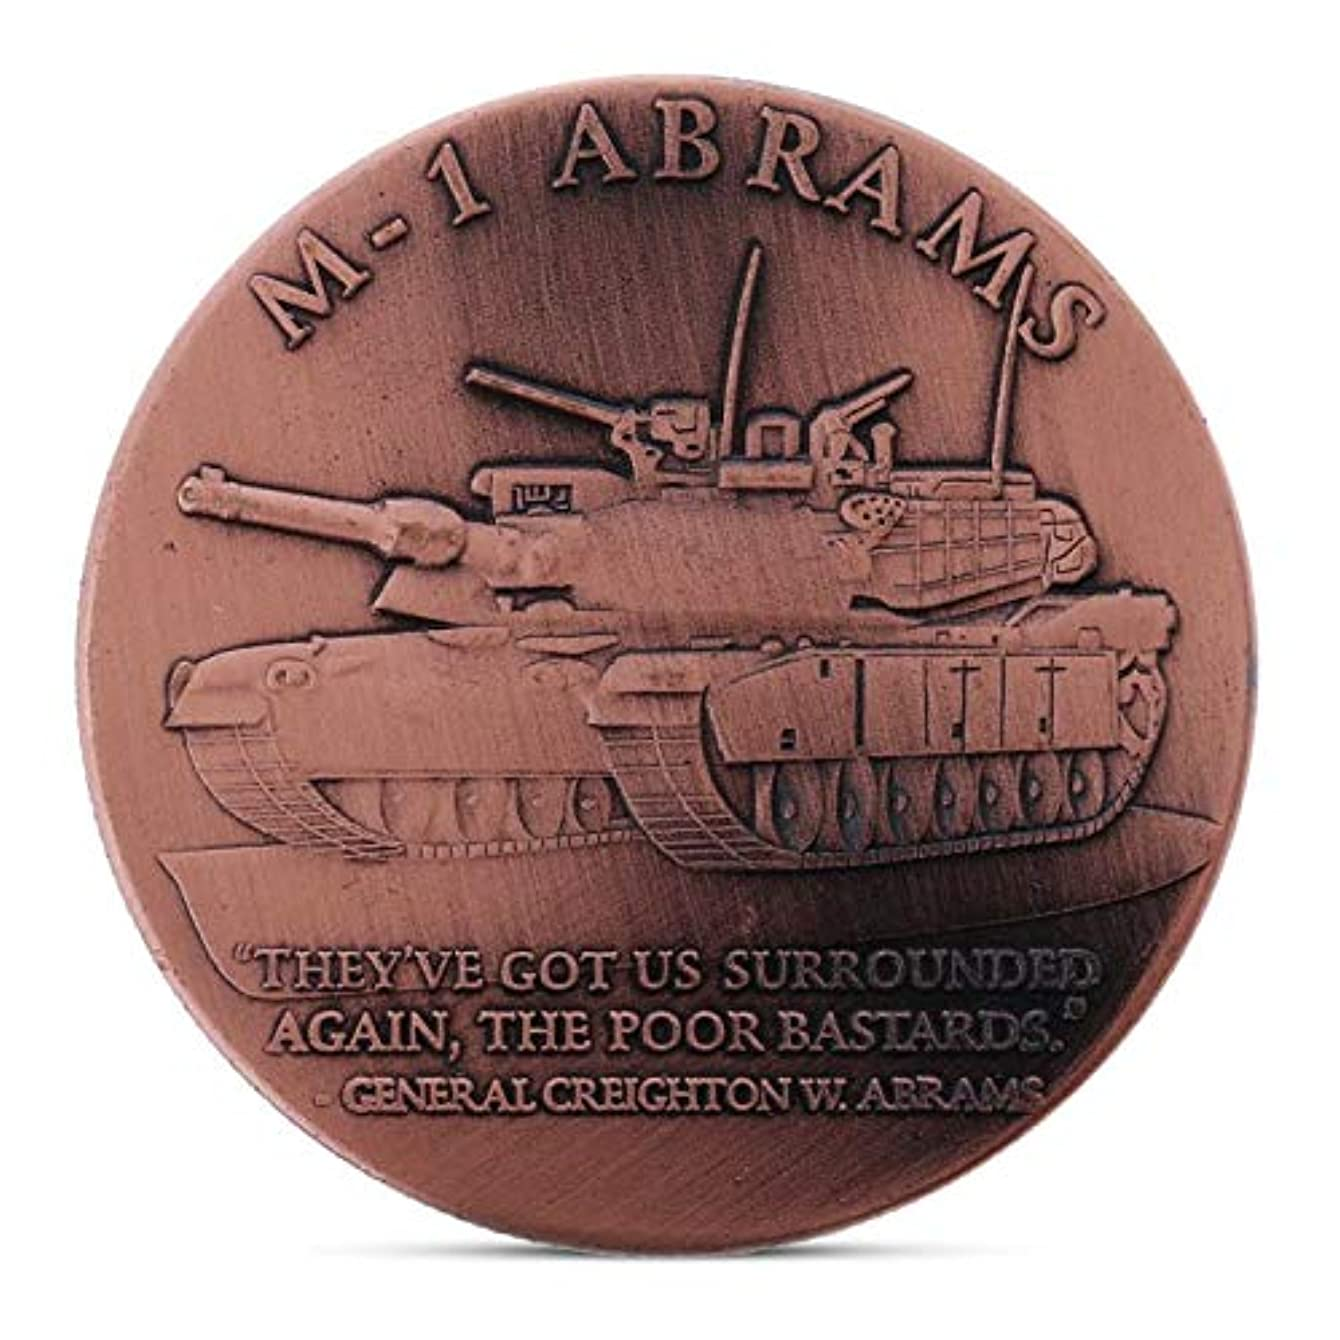 Coin Army - M 1 Main Battle Tank Commemorative Coin Collection Gift Souvenir - Gear World Military Frog Conditioner Army Tank Motor Coin Toy Air Coins Miyak Ingot Wireless Jiayu Handle Tank Rc